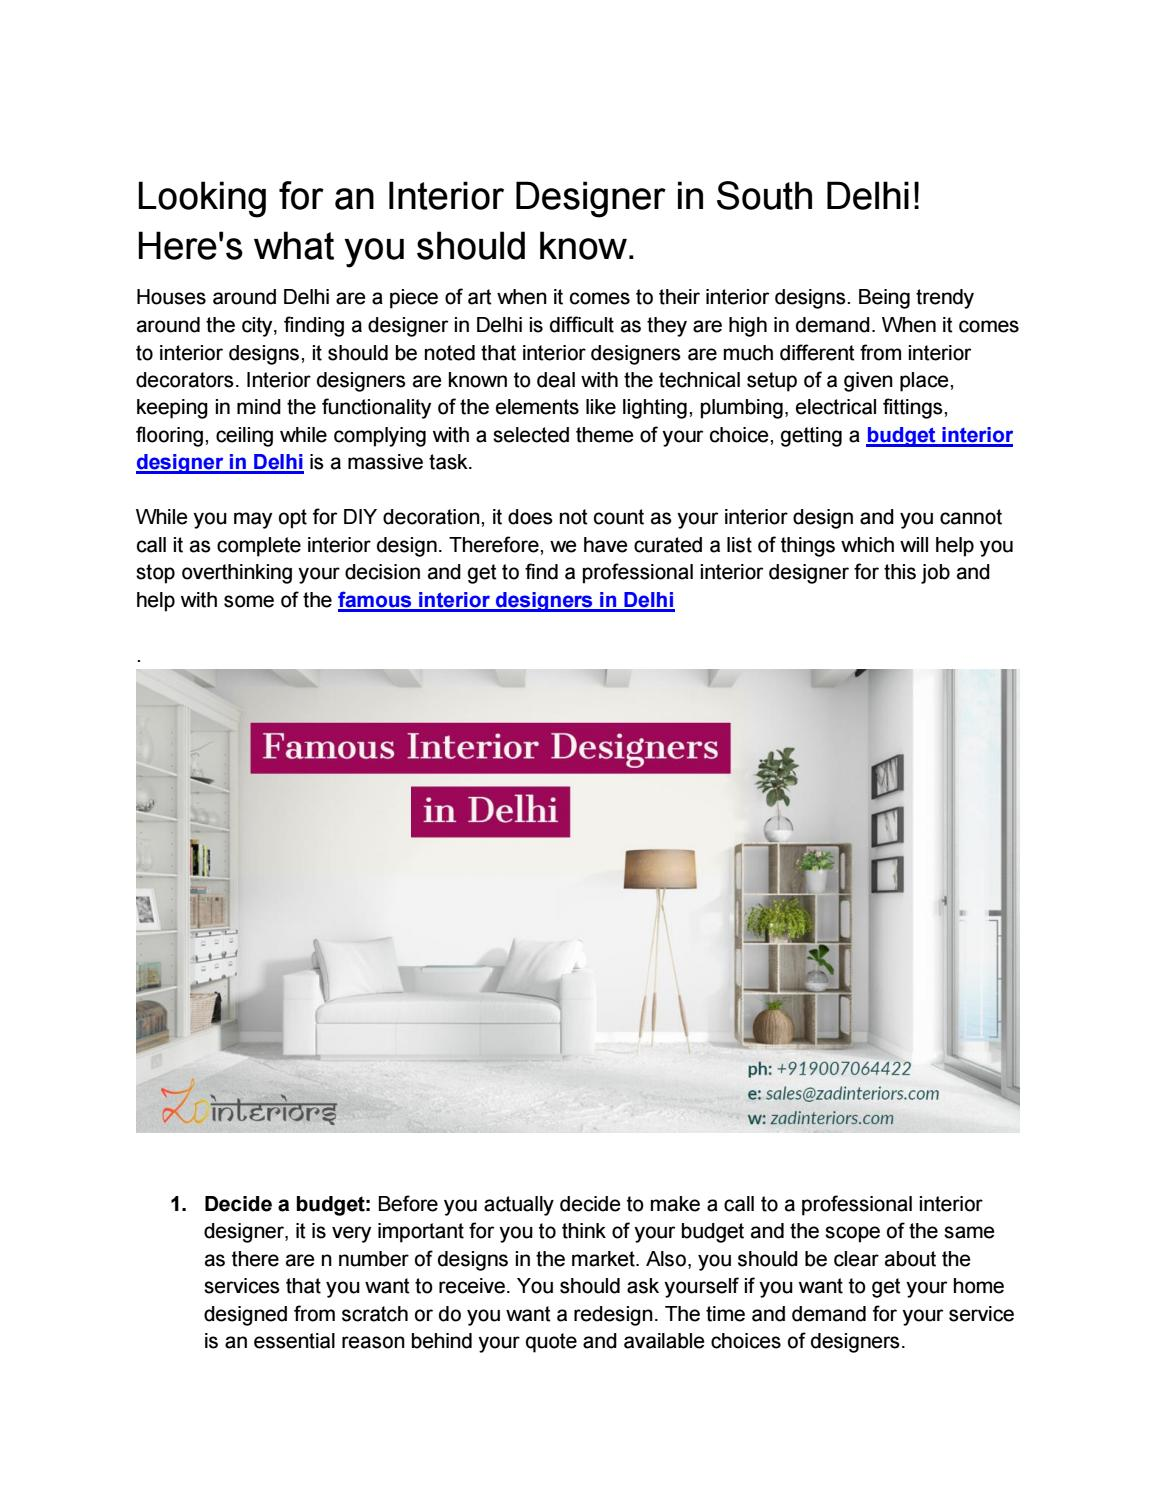 Looking For An Interior Designer In Delhi Here S What You Should Know By Shipra Ojha Issuu